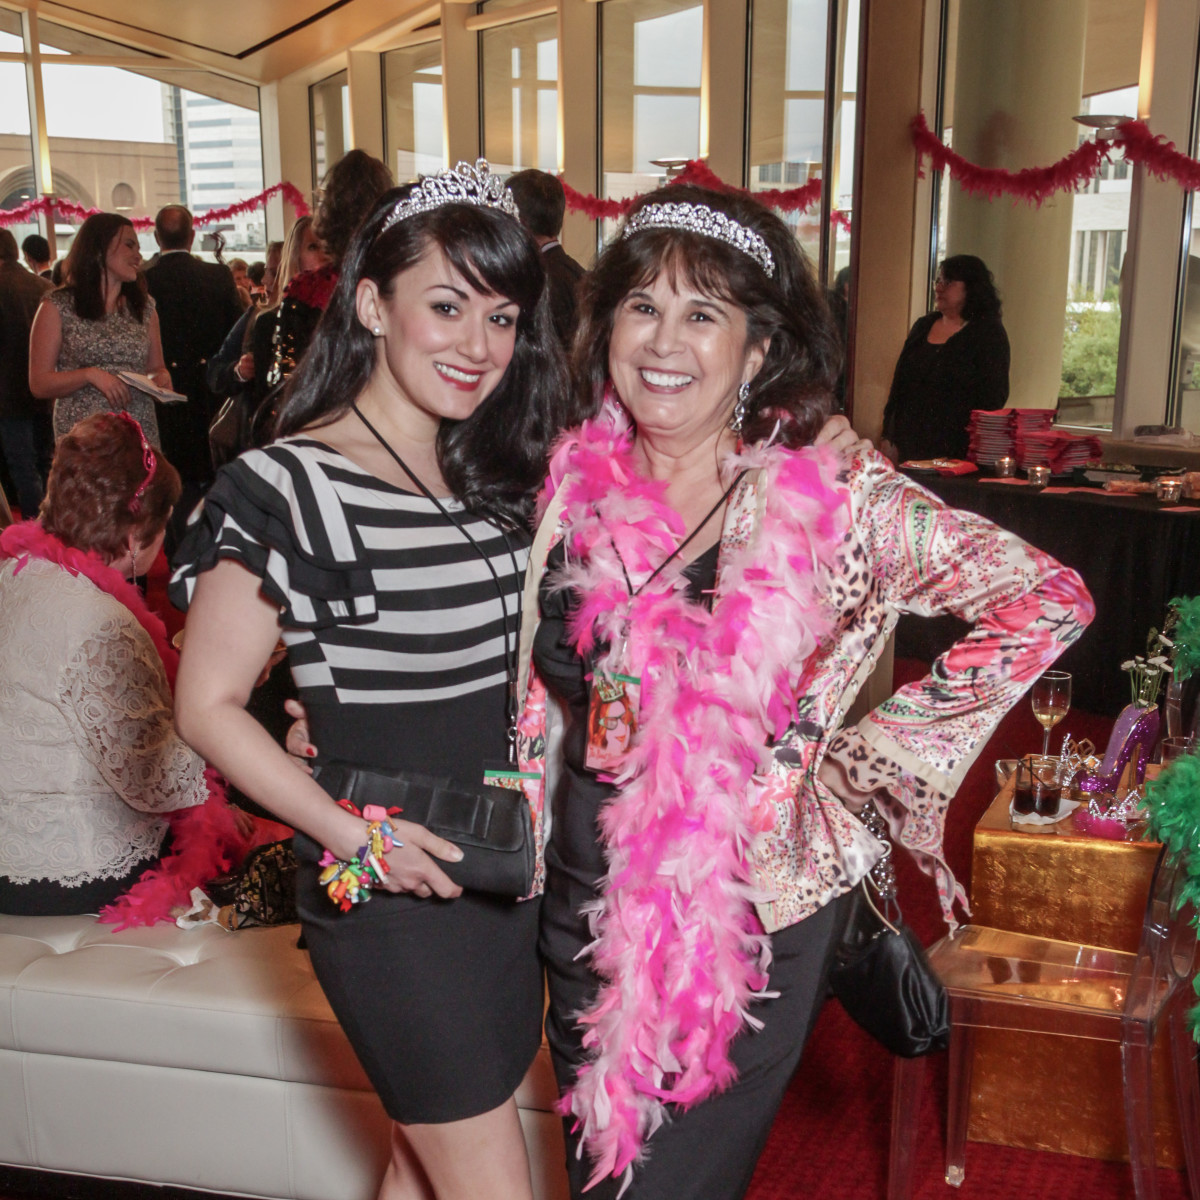 Caroline Millington, Grace Pendland at Sweet Potato Queens party